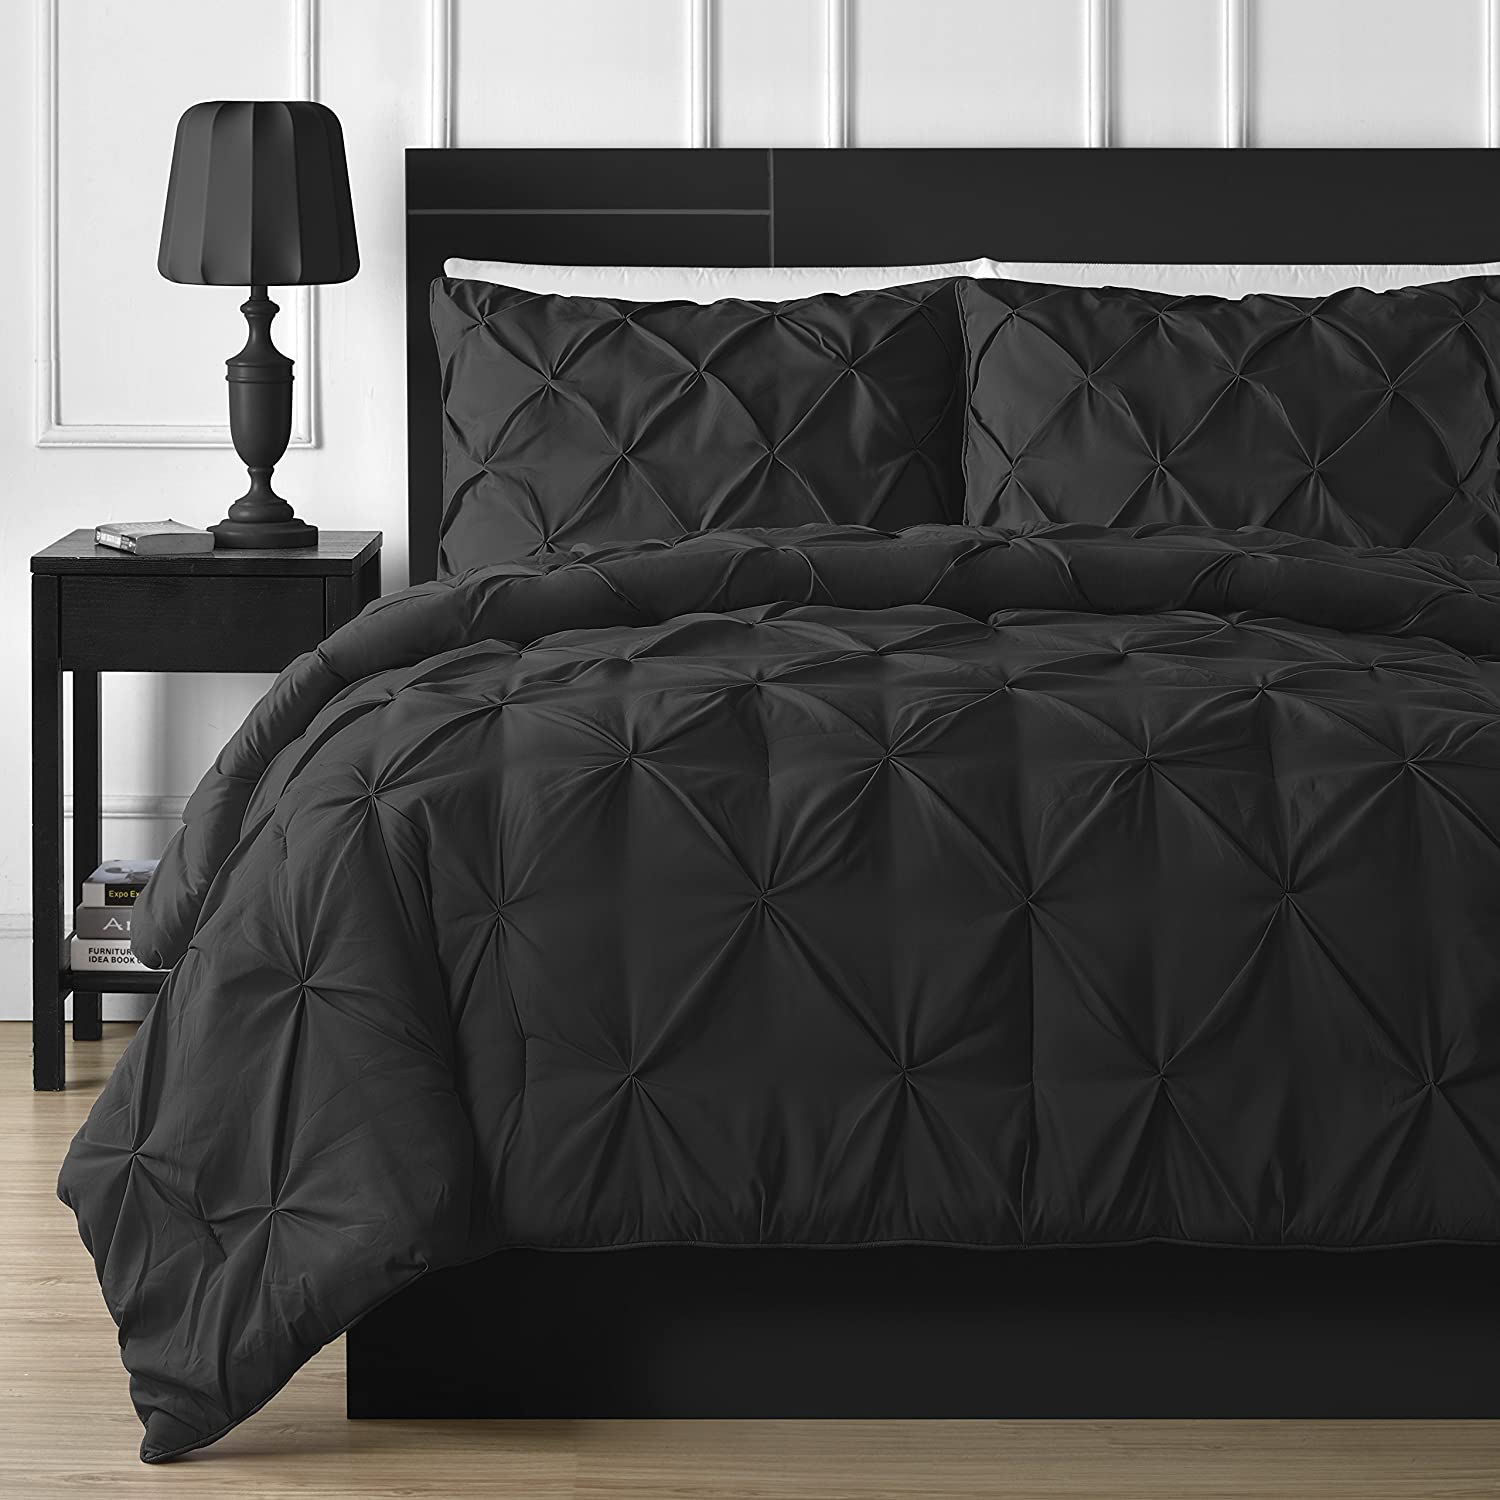 Comfy Bedding 3-piece Pinch Pleat Comforter